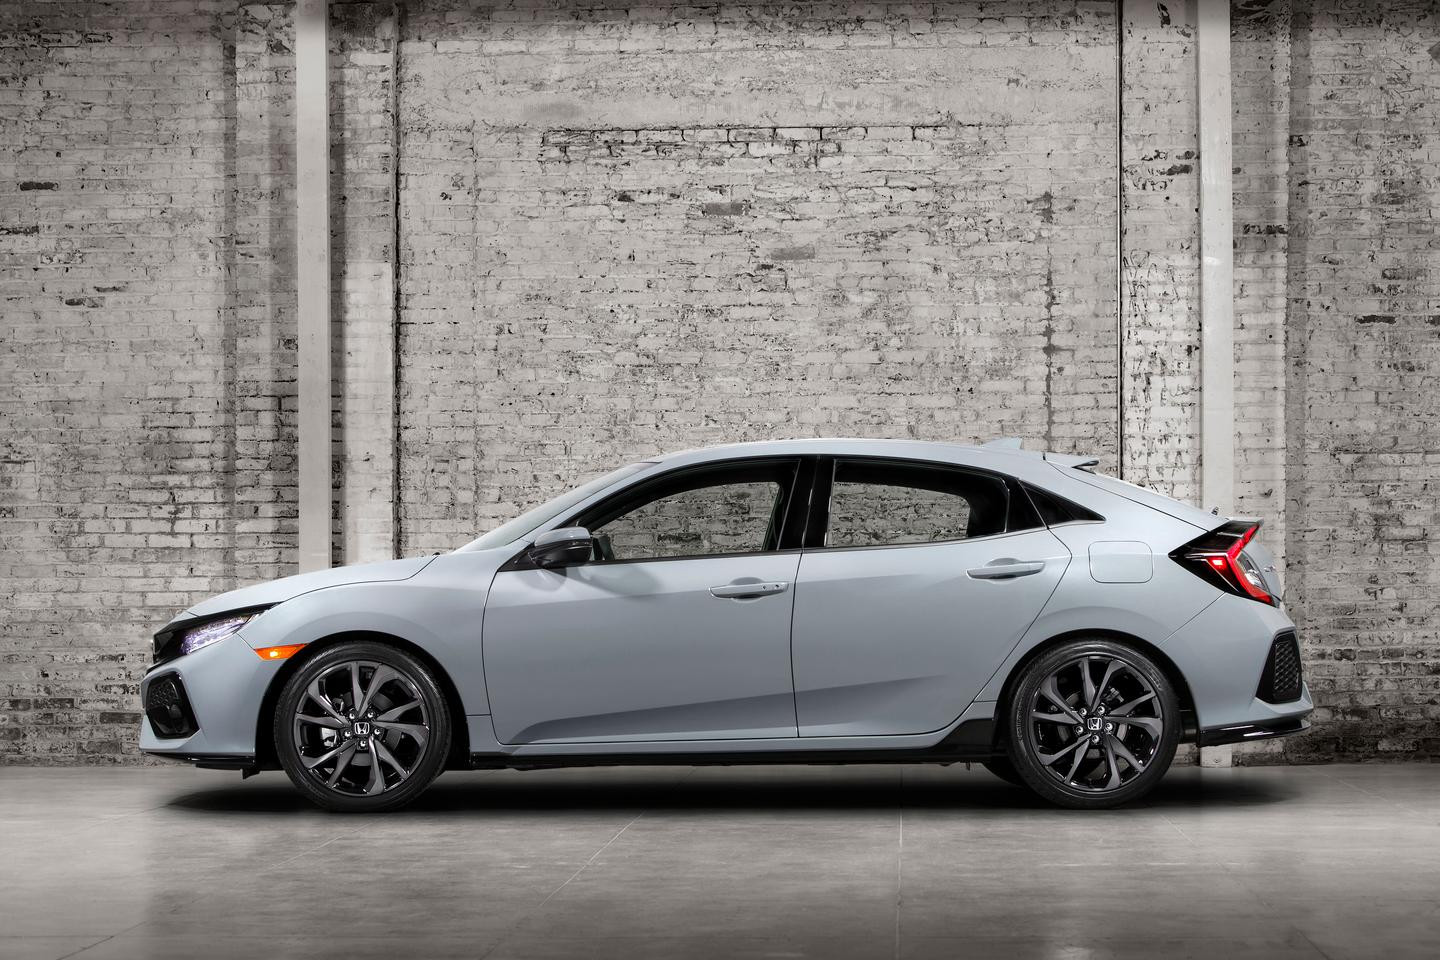 The new Civic hatch is powered by a 1.5-liter turbocharged motor